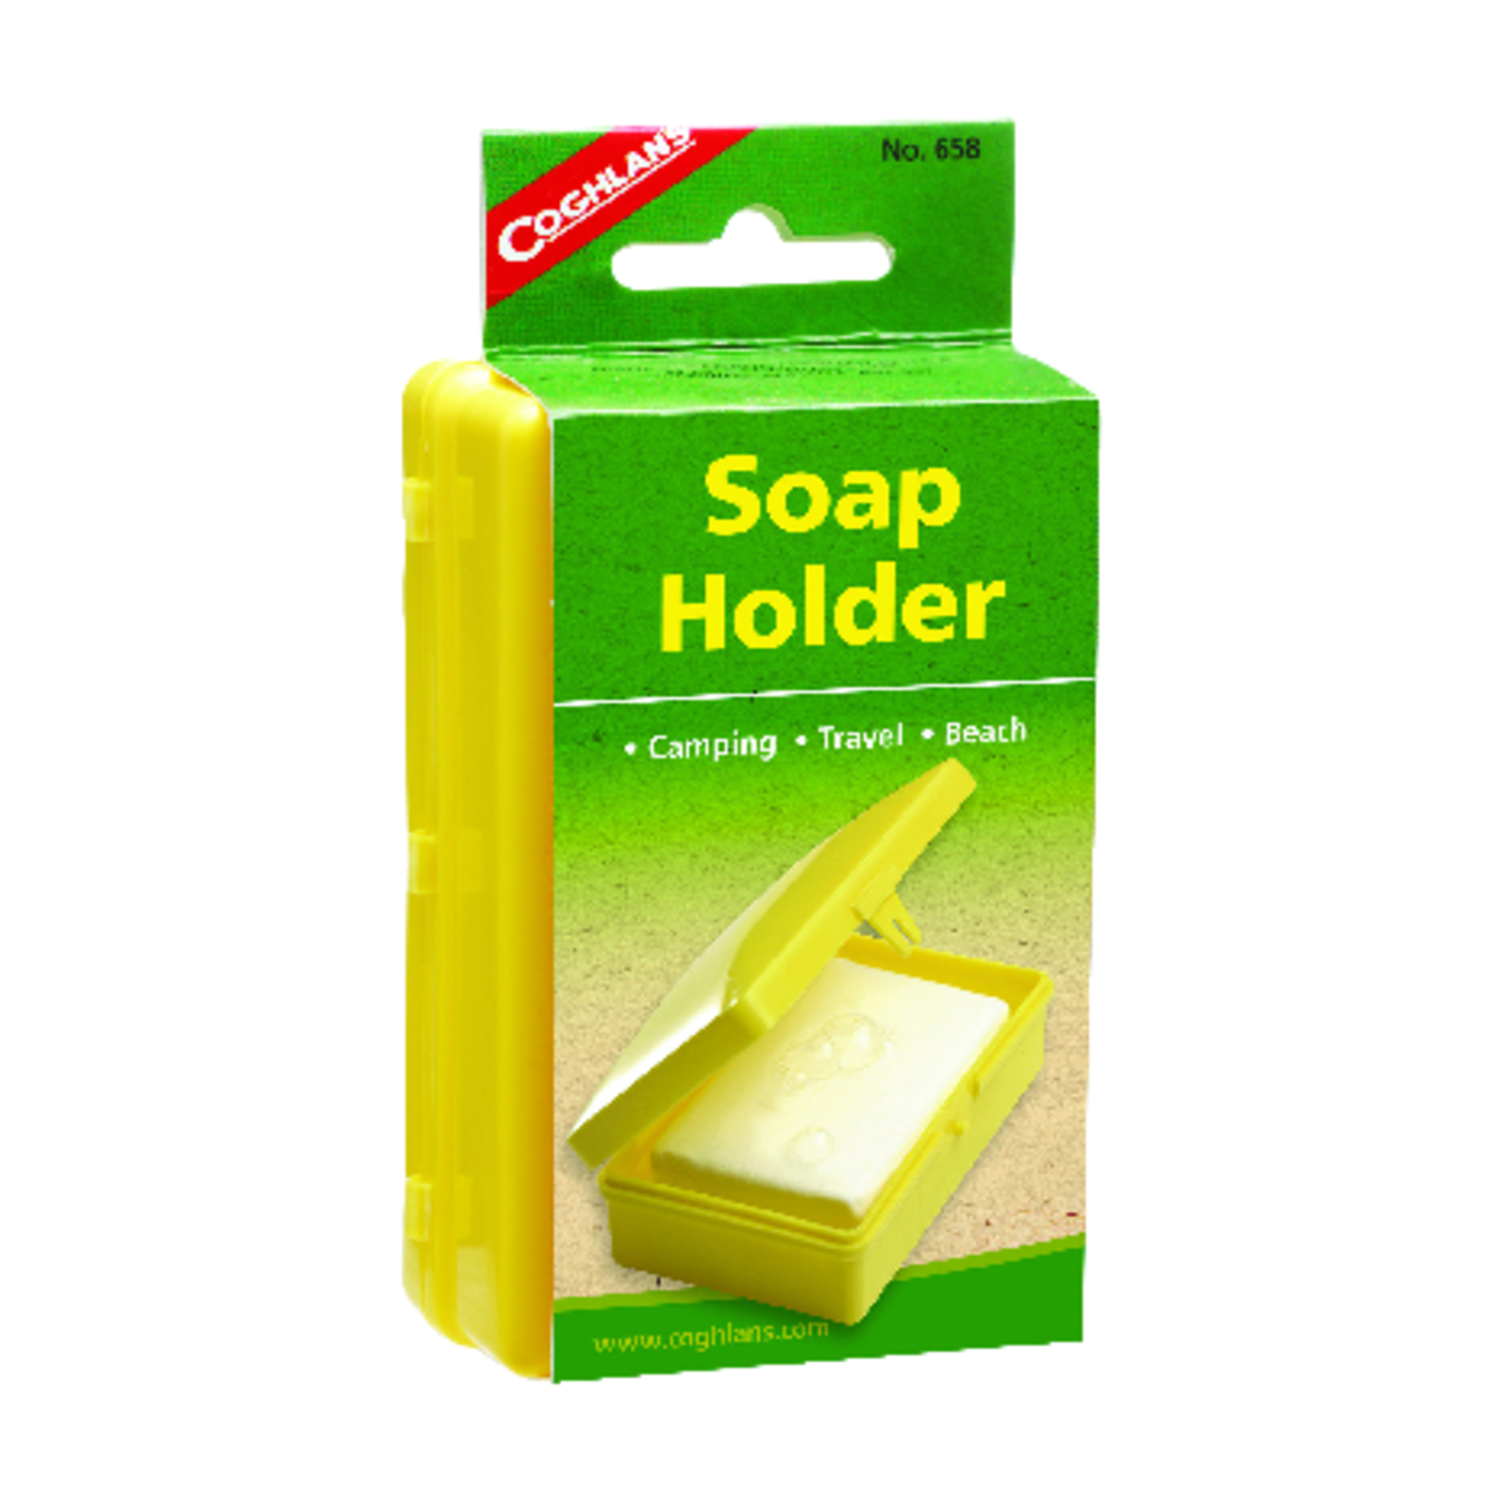 Coghlan's  Soap Holder  4 in. H x 2-7/8 in. W x 1-3/4 in. L 1 pk